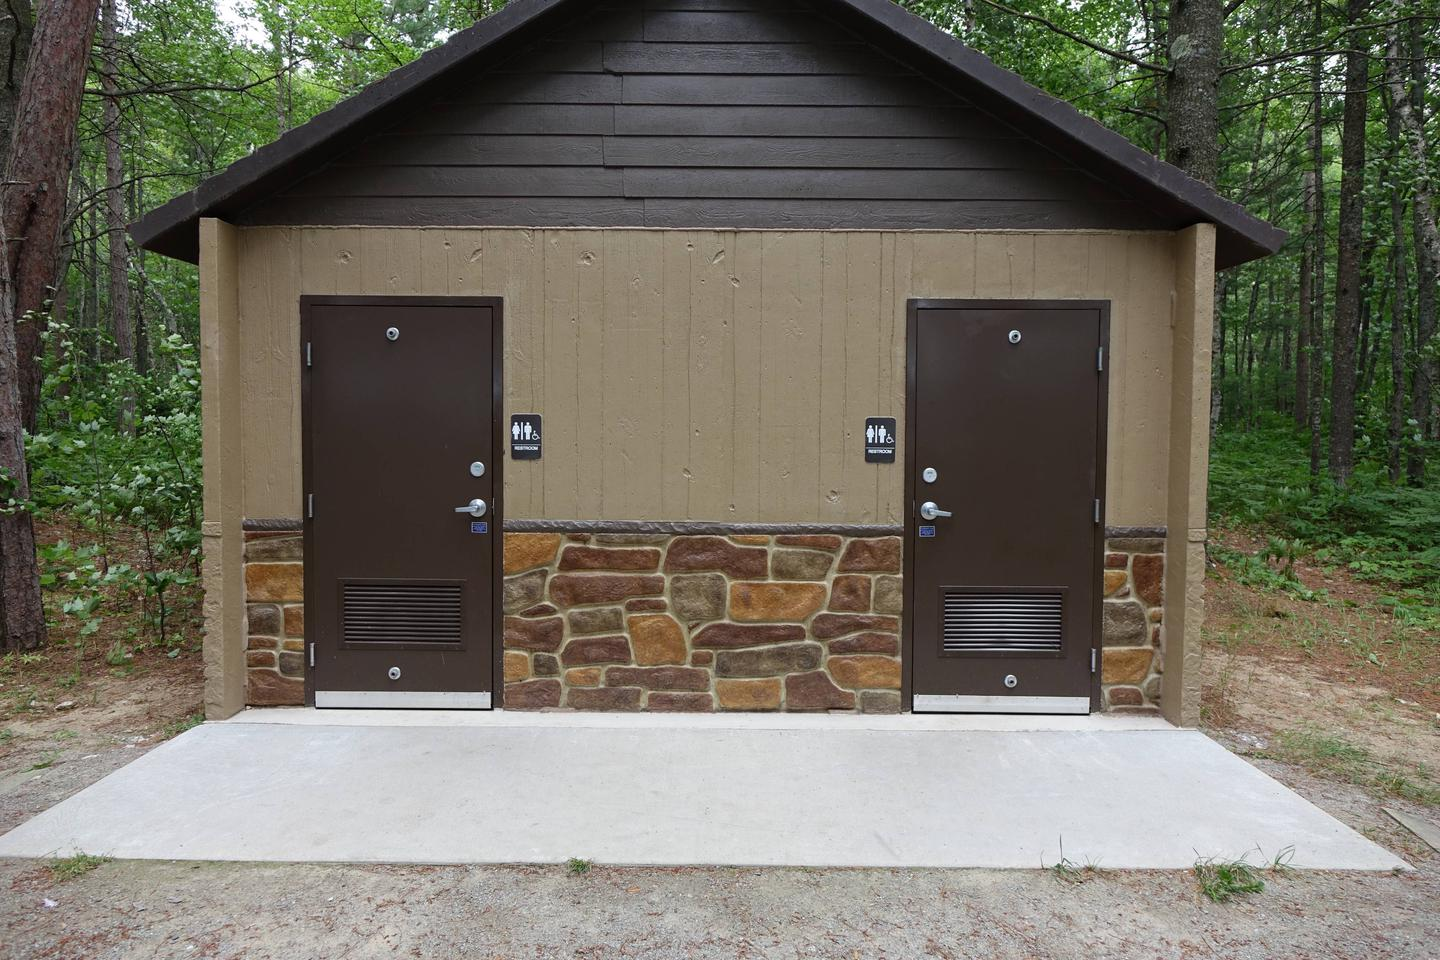 Vault restrooms at Twelve Mile CampgroundRestrooms